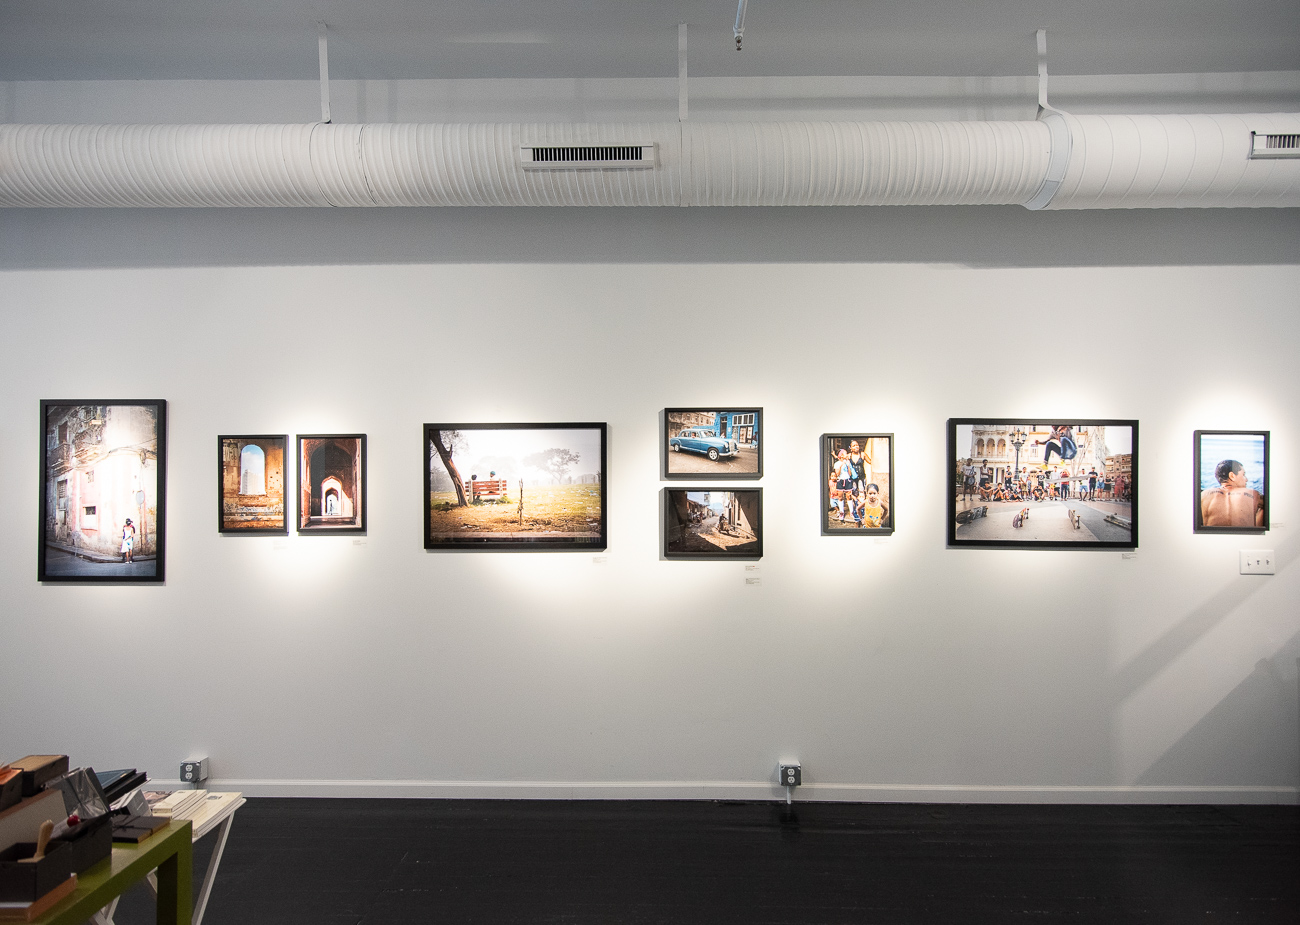 In addition to selling paper goods, the store proudly showcases local artists' works. Every Final Friday, a new artist is placed on their gallery wall. For the month of August 2019, photographer Sean Hughes' photographs of Cuba are on display. / Image: Phil Armstrong, Cincinnati Refined // Published: 8.21.19